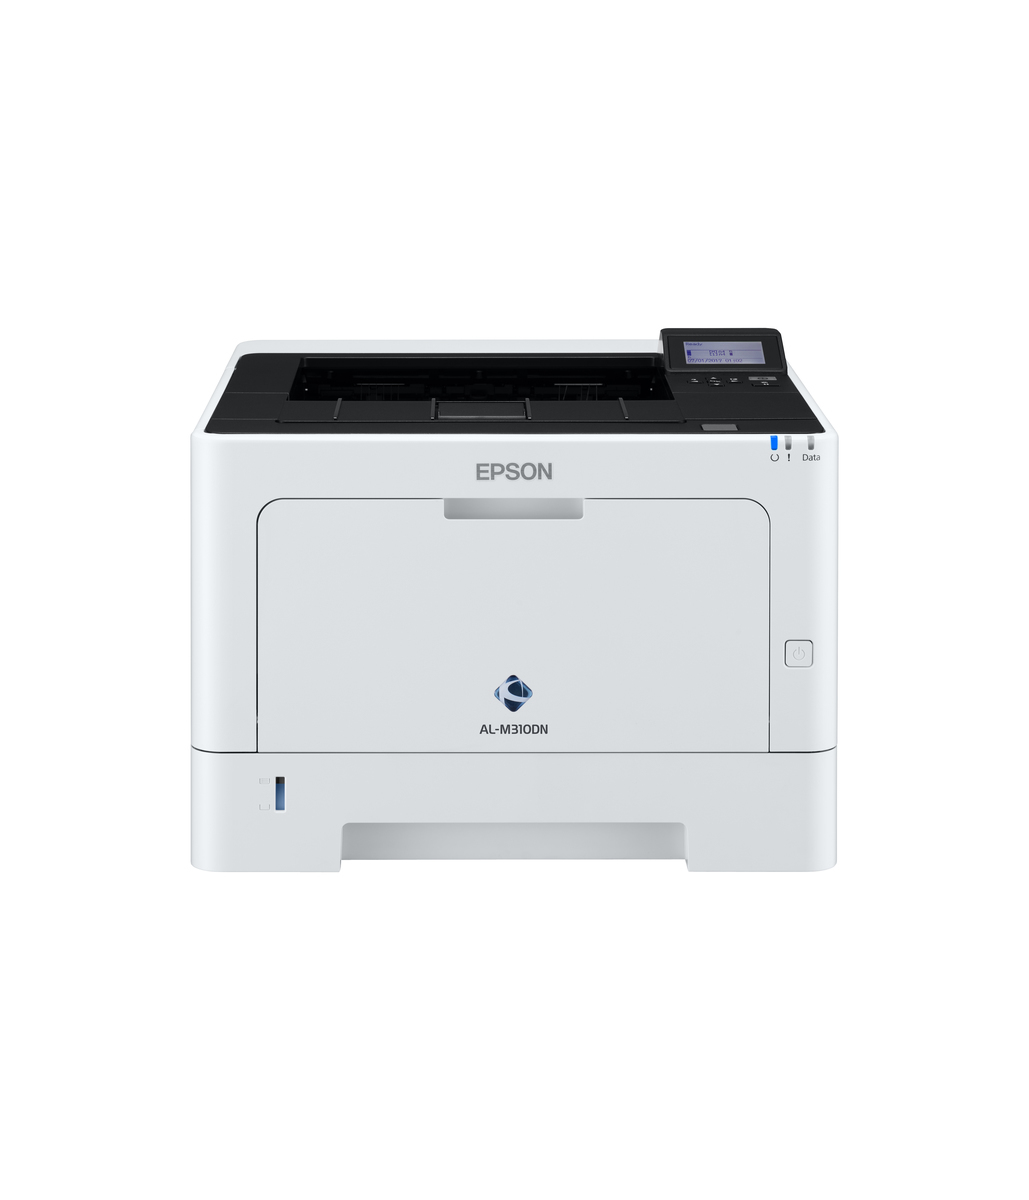 EPSON WORKFORCE AL-M310DN 1200 X 1200DPI A4